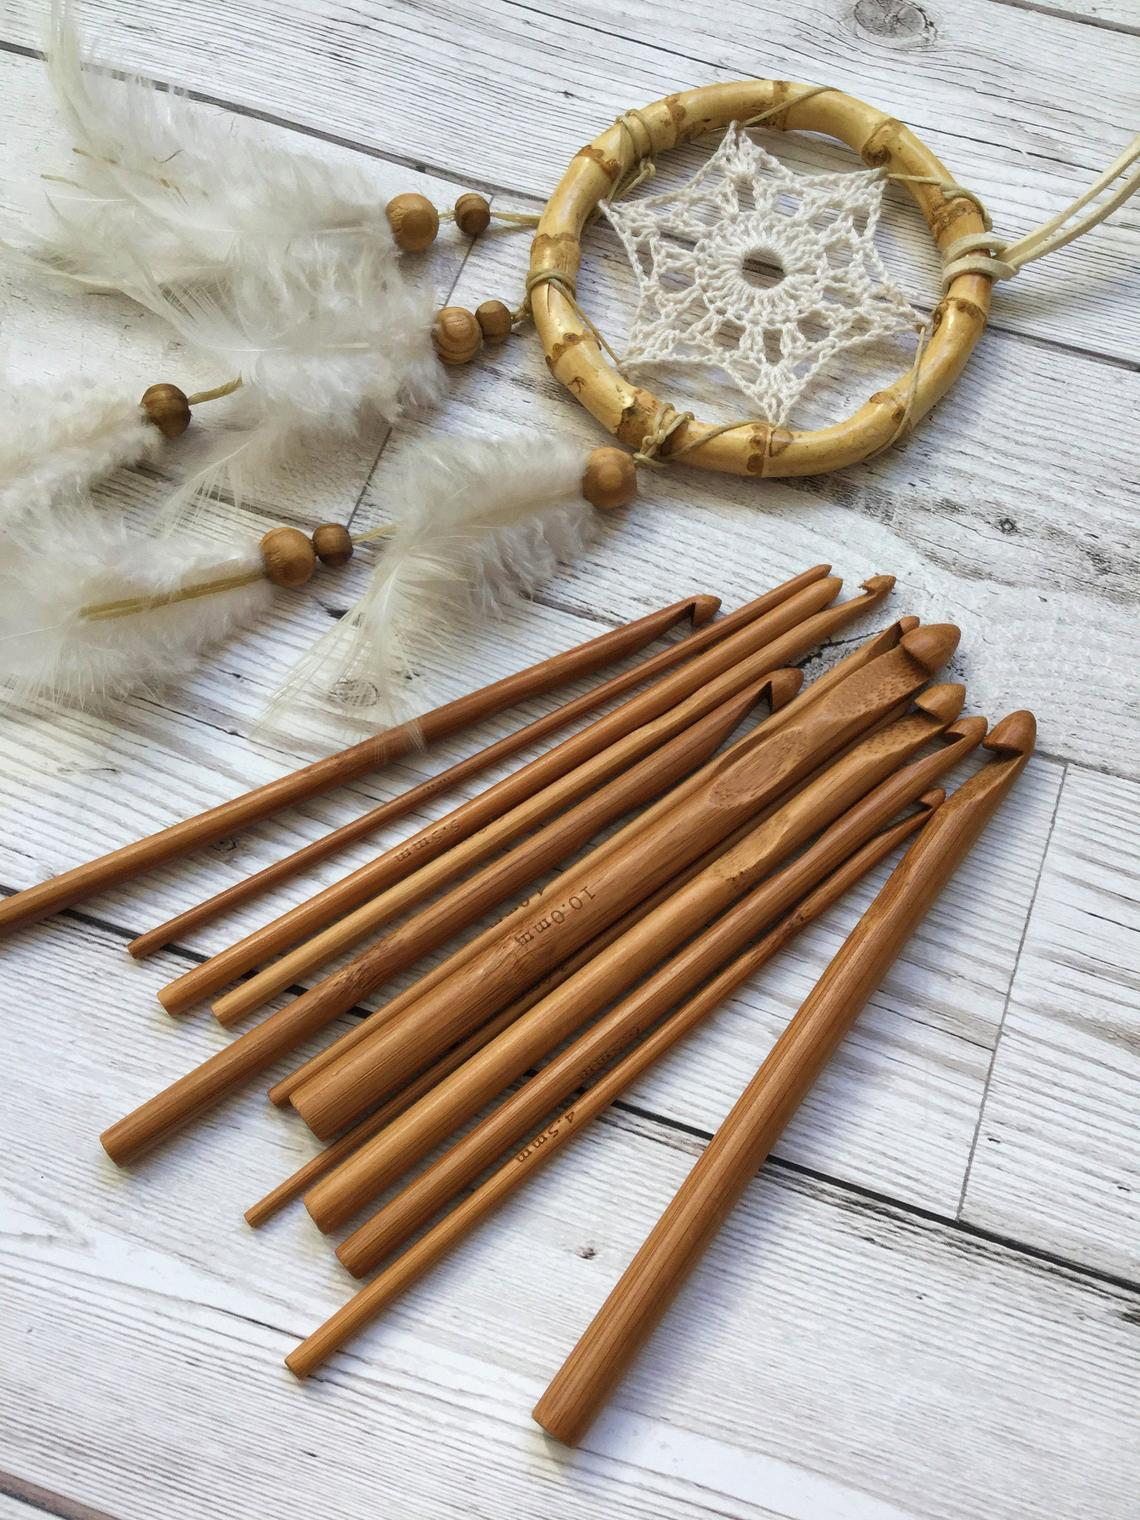 bamboo crochet hooks and a dreamcatcher